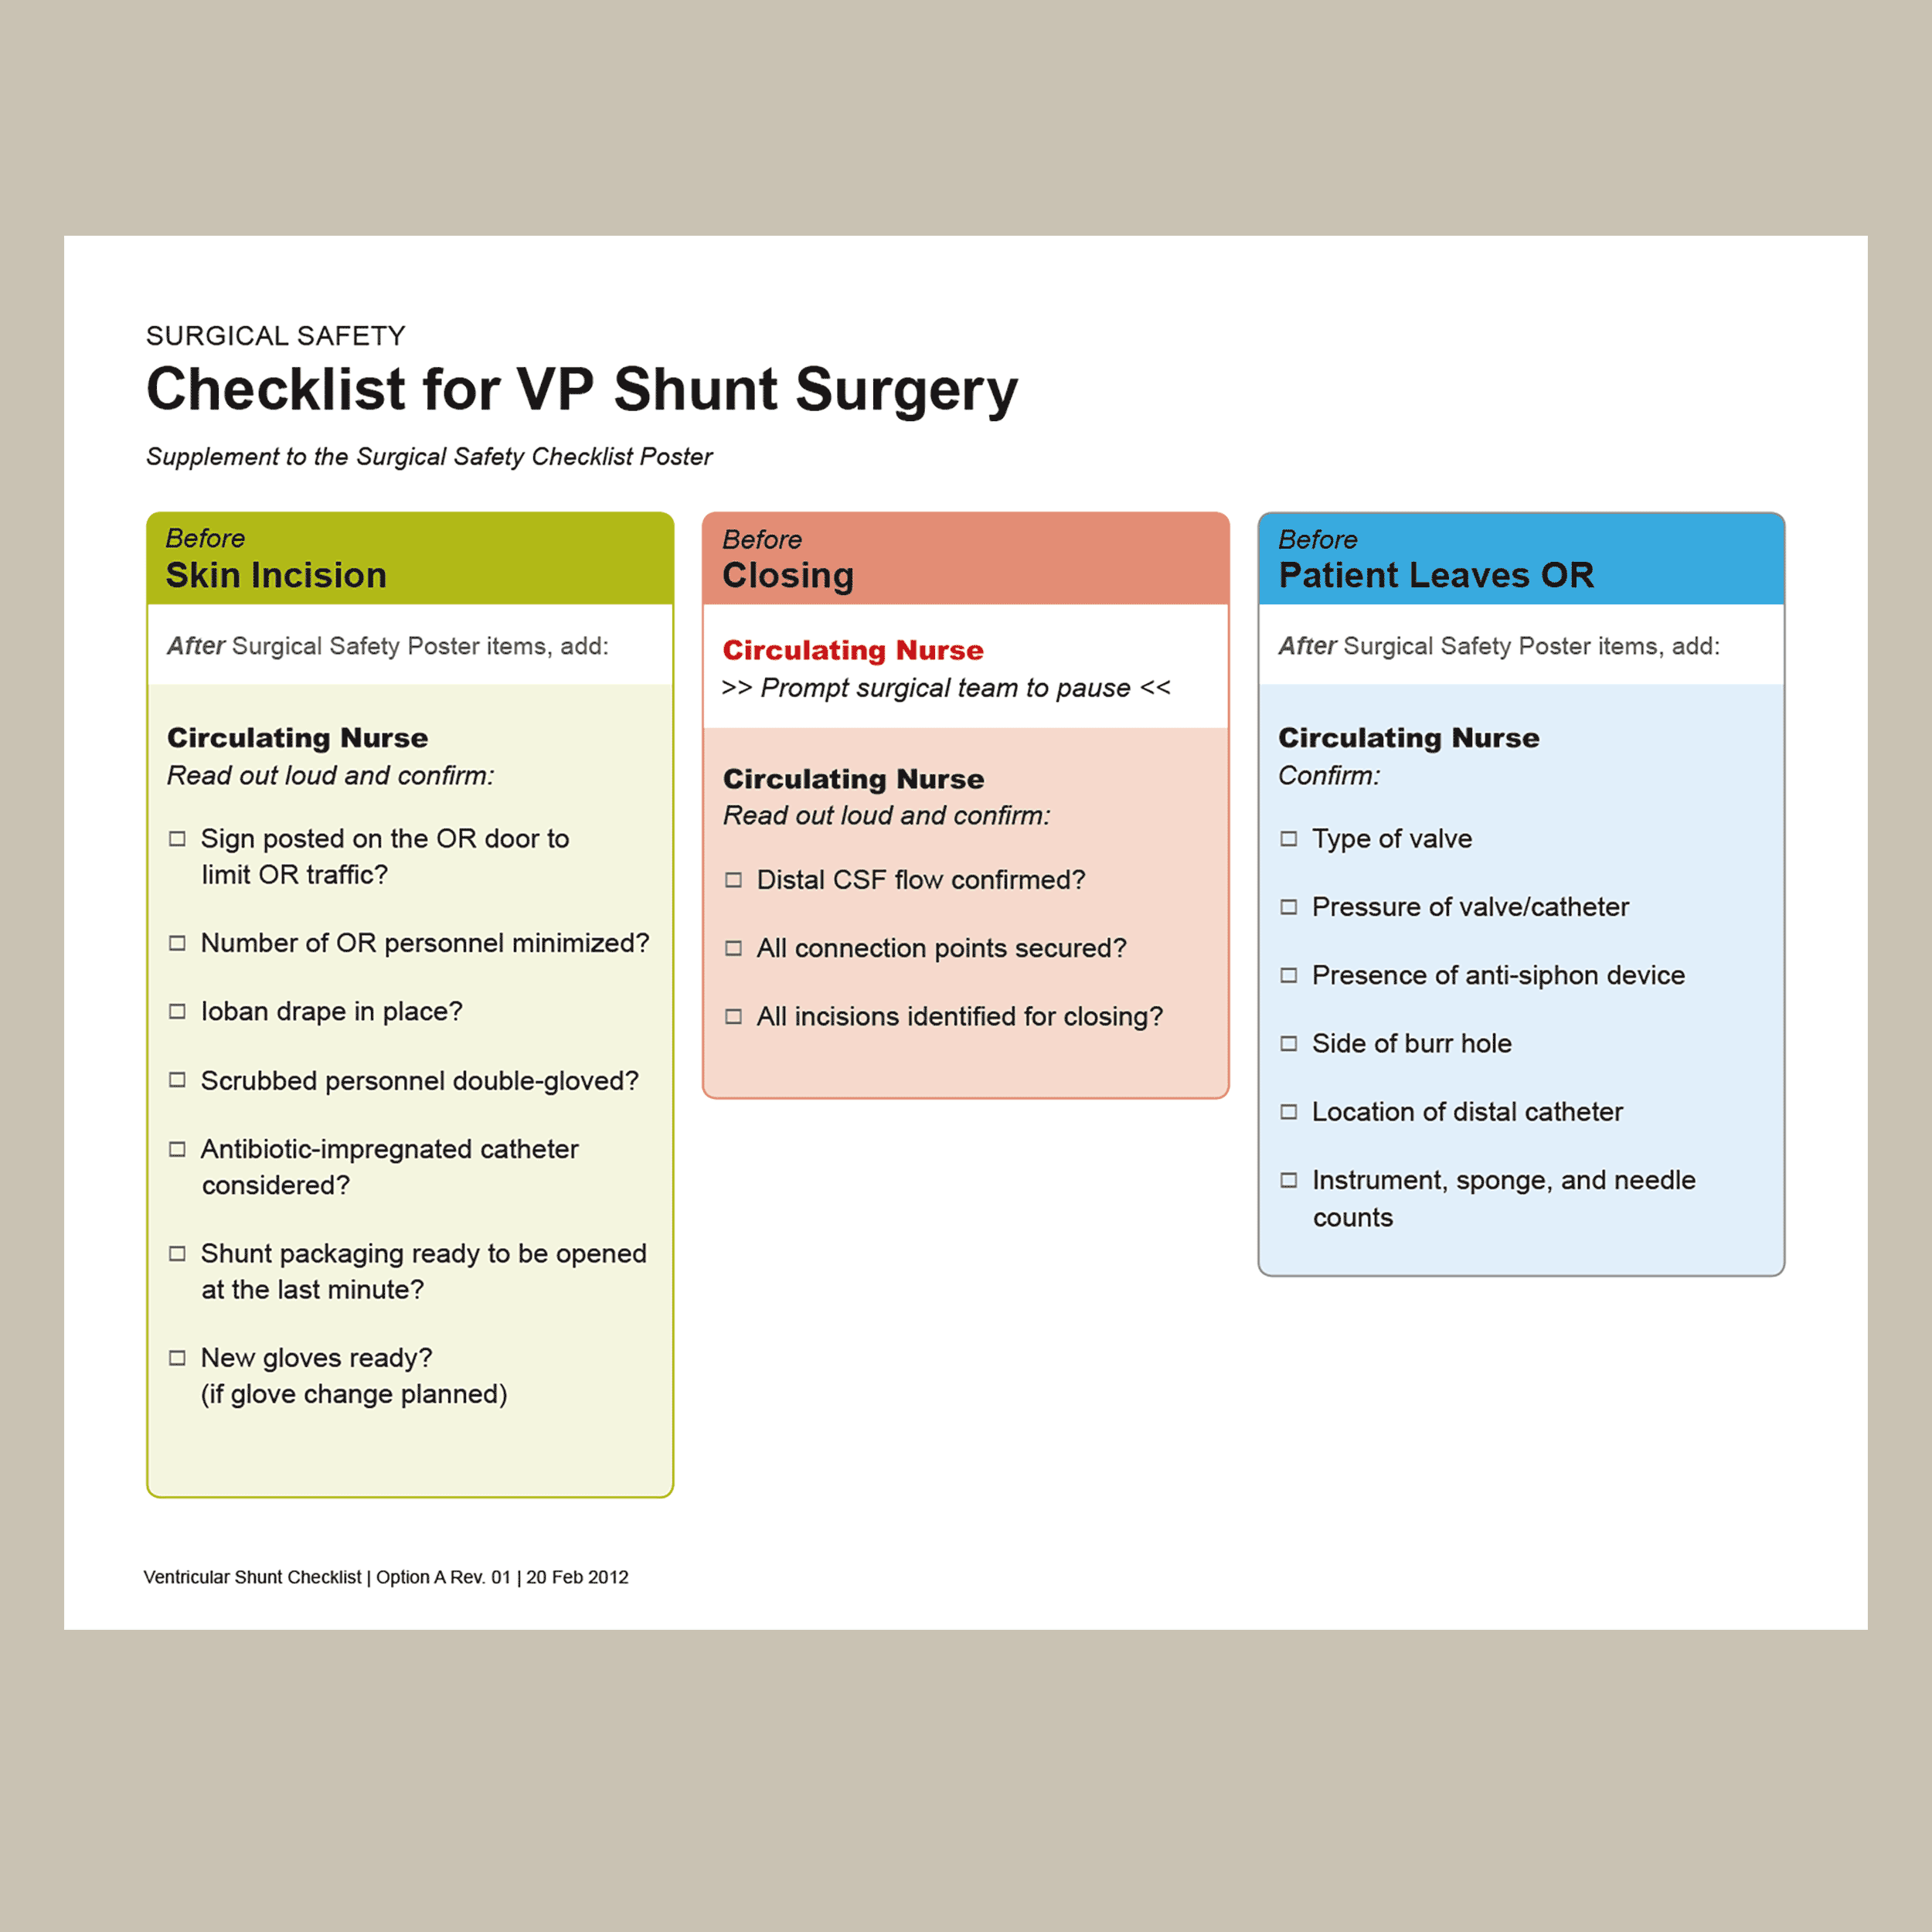 VP Shunt Checklist : a surgical safety checklist for neurological procedure at high risk of infection   Read more